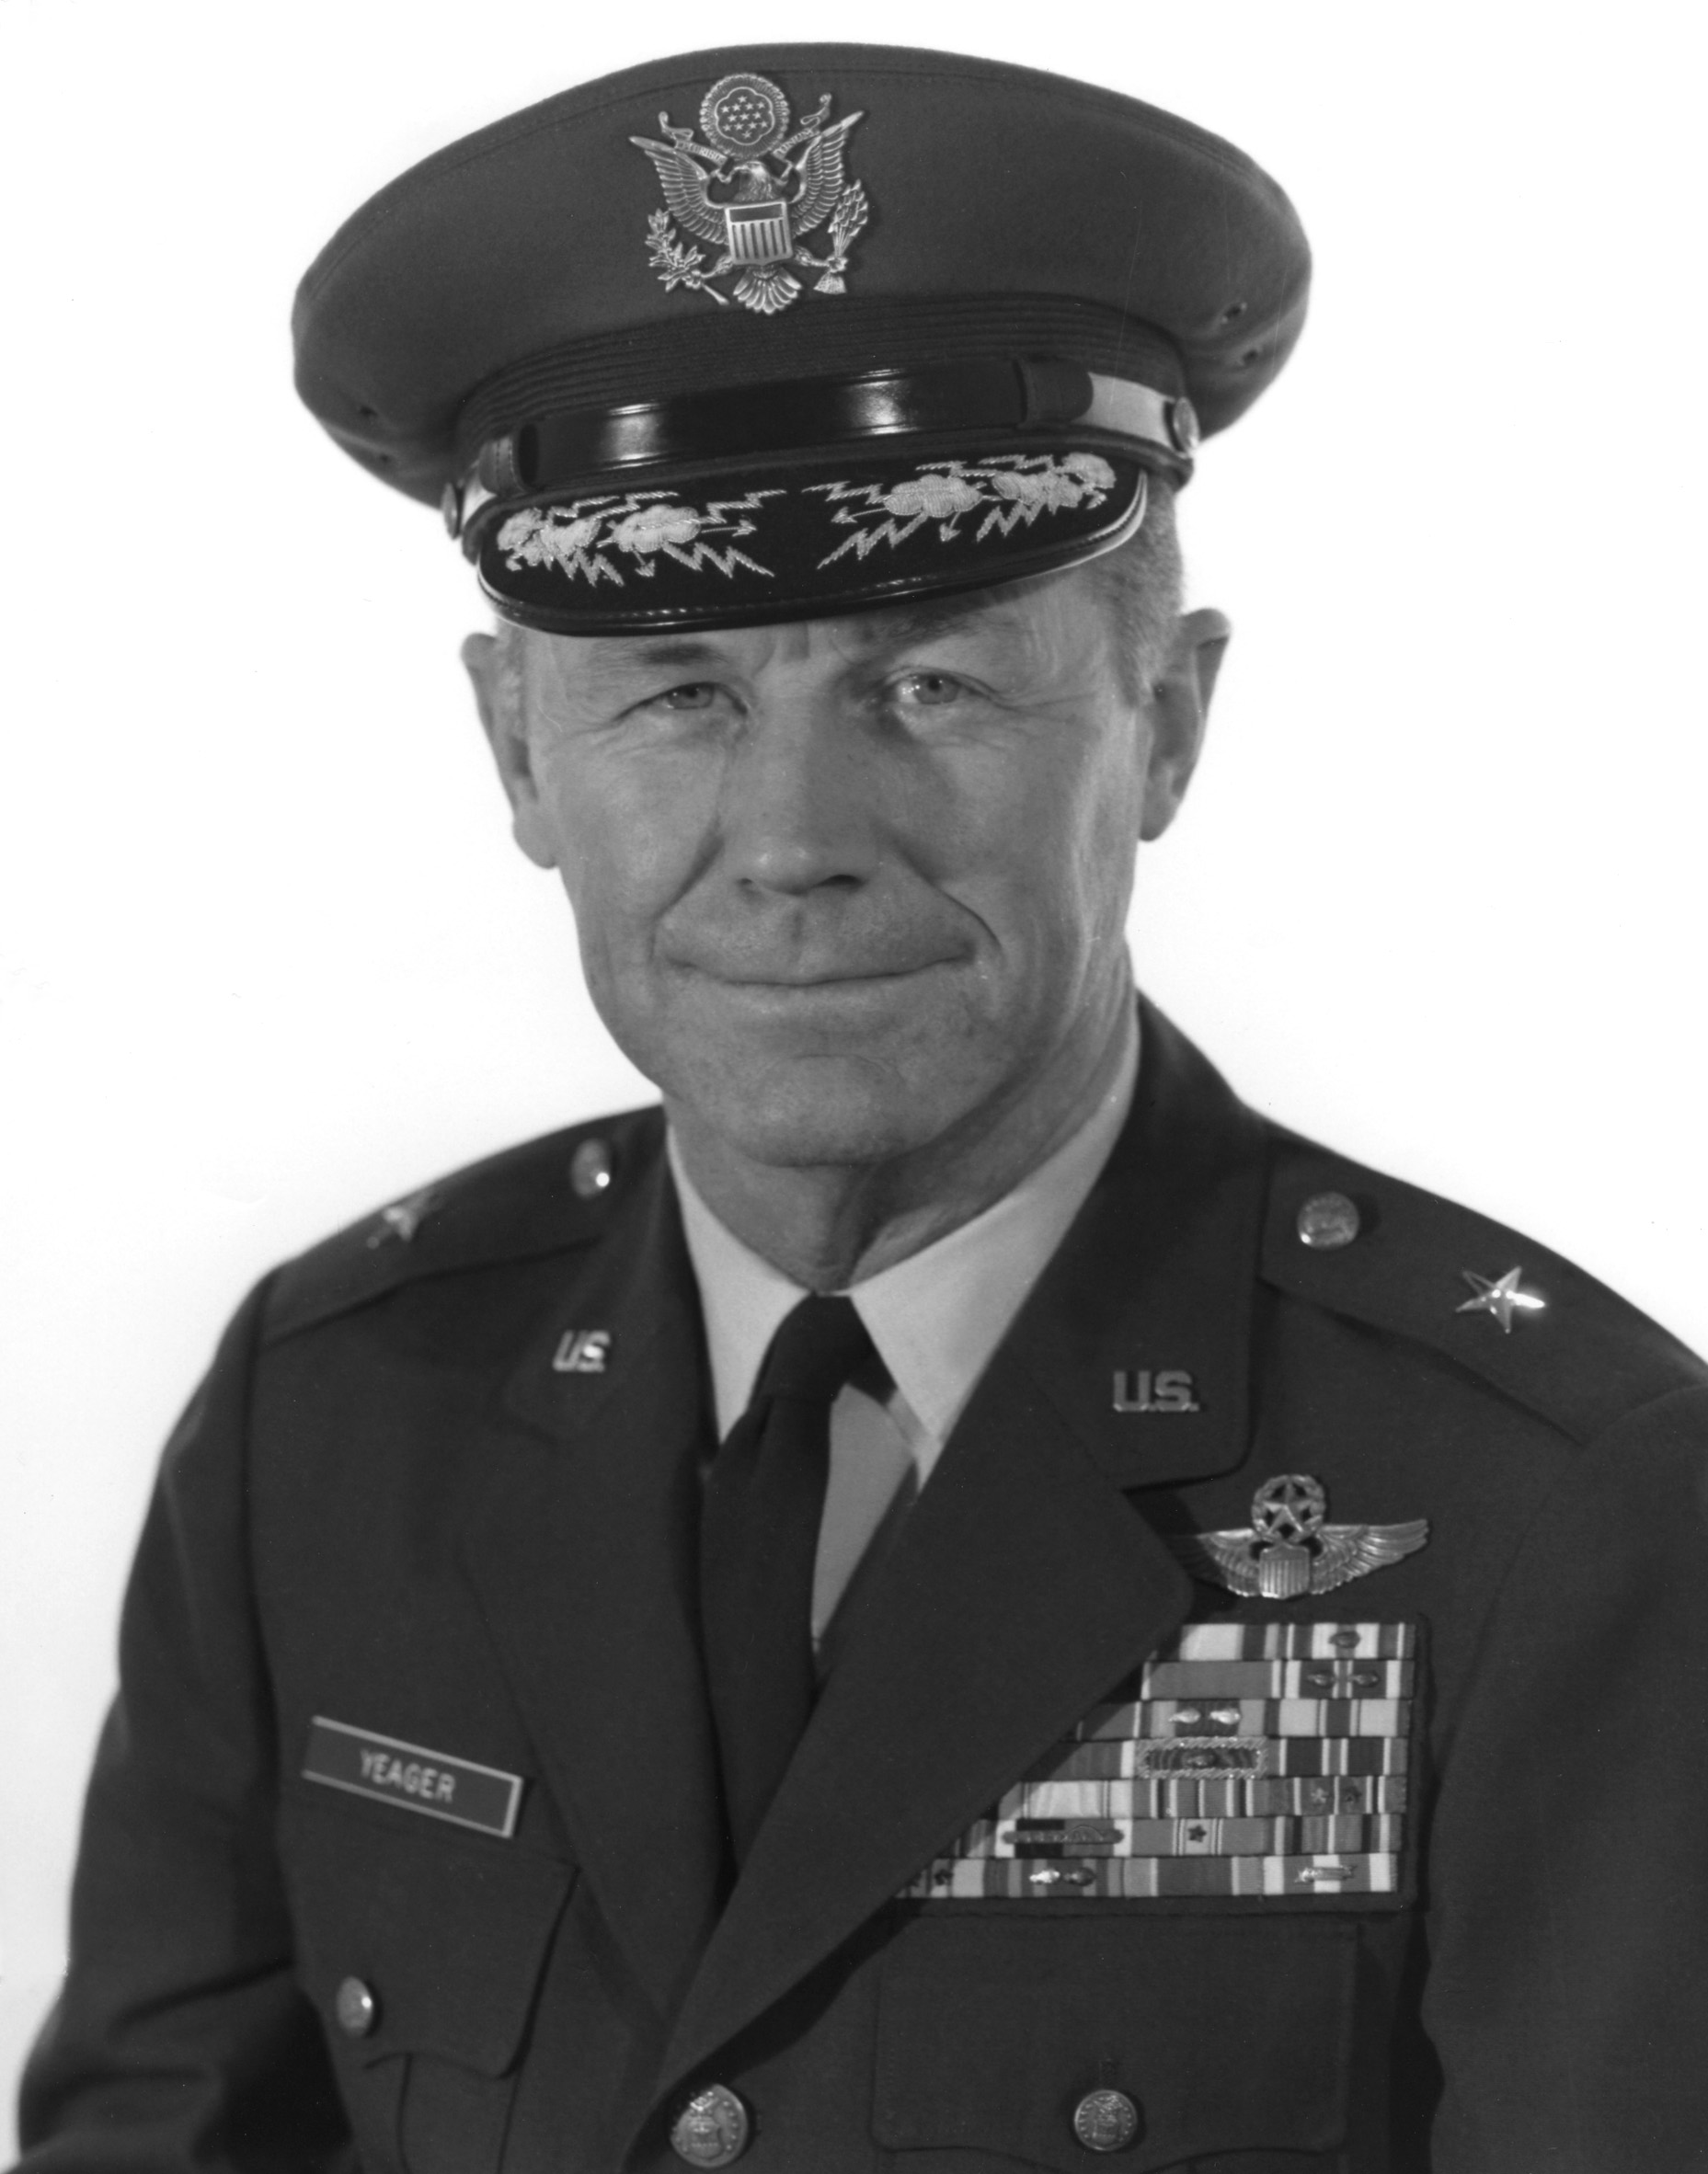 a biography of general chuck yeager Captain chuck yeager with the x-1 supersonic research aircraft in 1947, shortly after breaking the sound barrier charles elwood yeager was born in 1923 in myra, west virginia and grew up in the nearby village of hamlin.